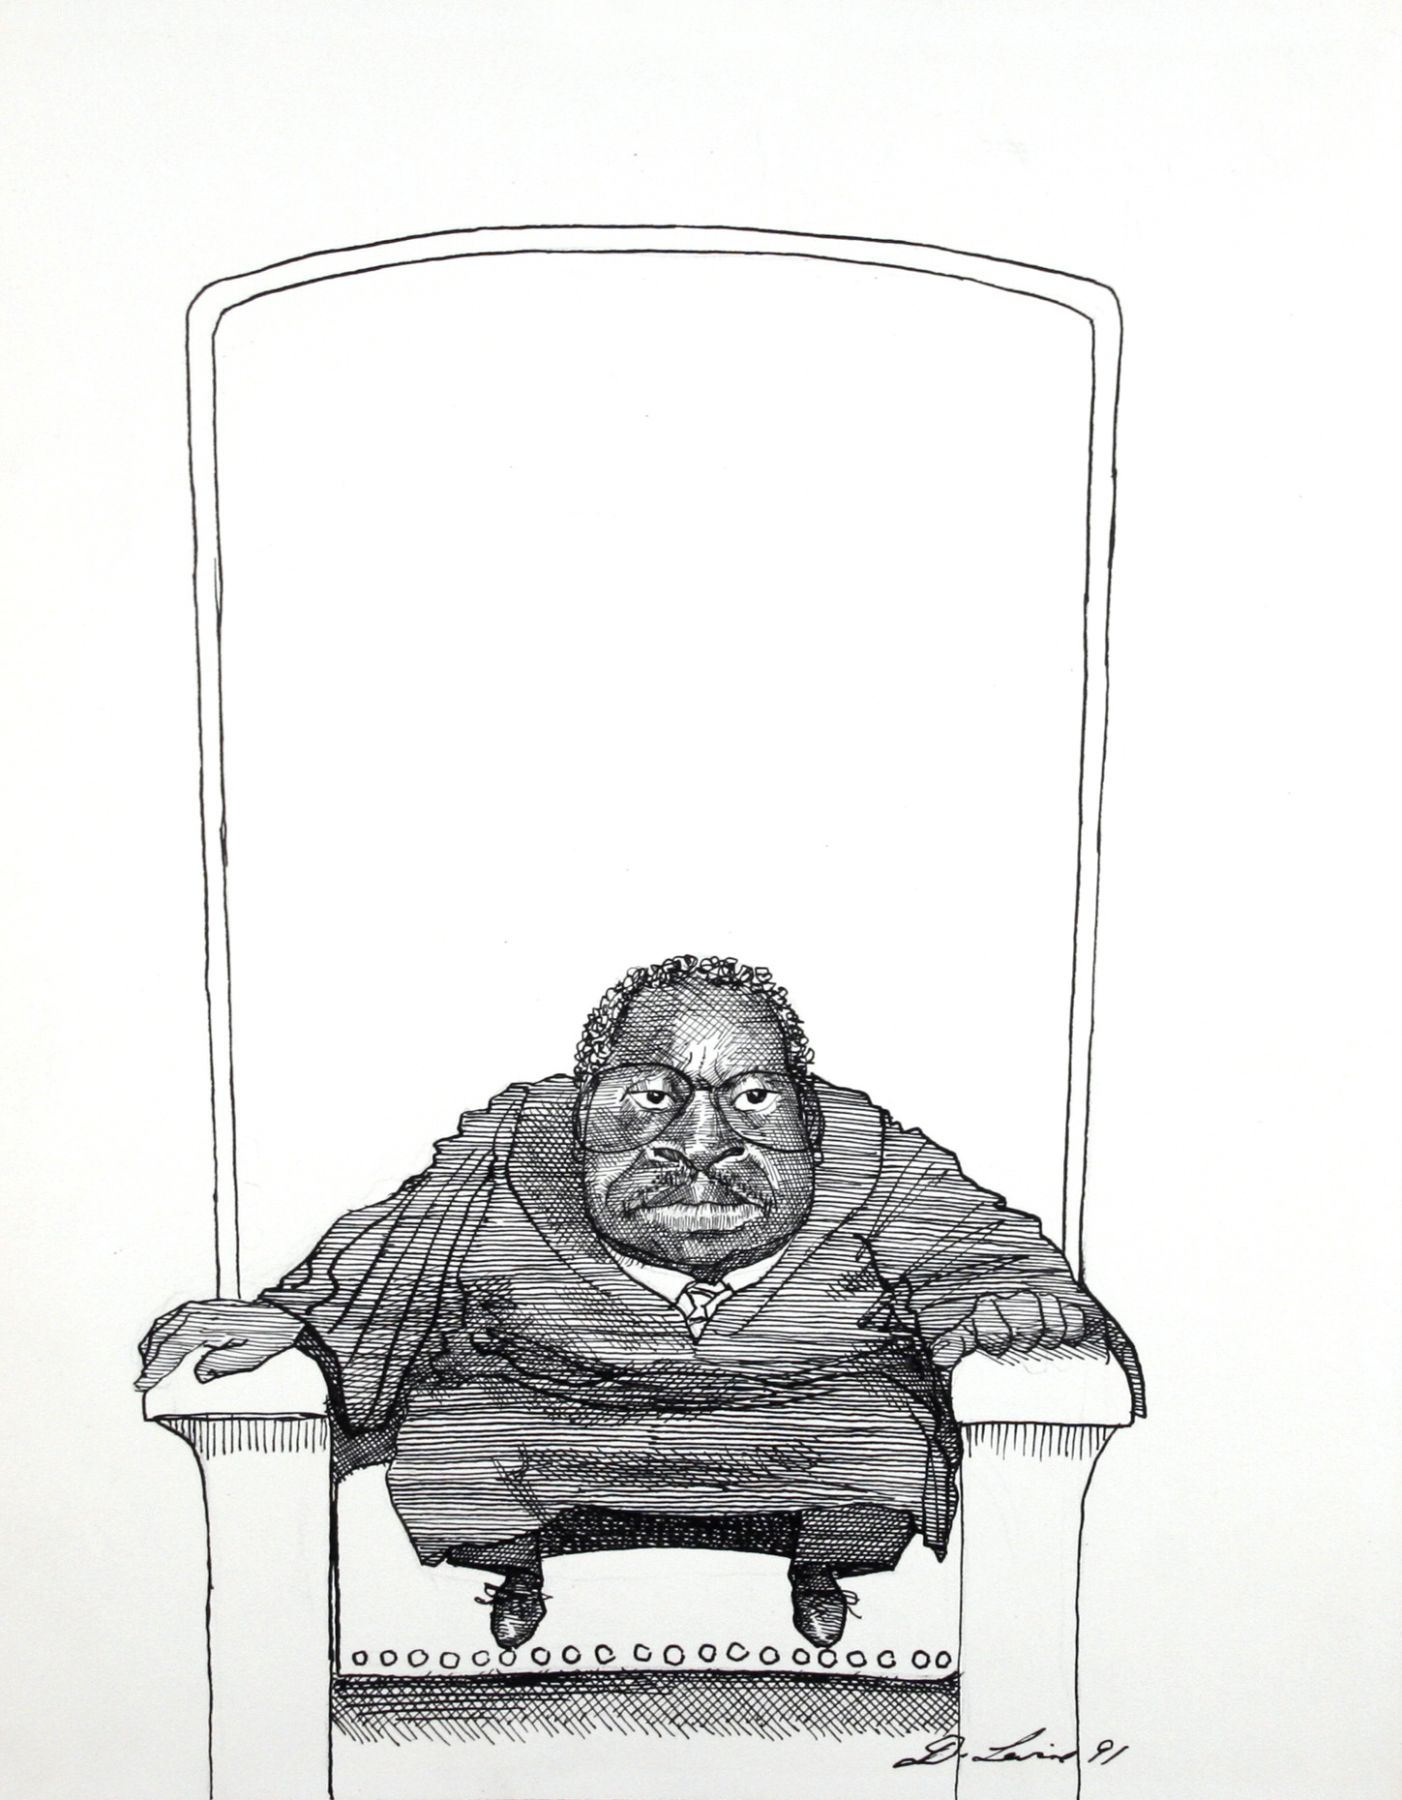 David Levine, Clarence Thomas, 1991, ink on paper, 14 x 11 inches